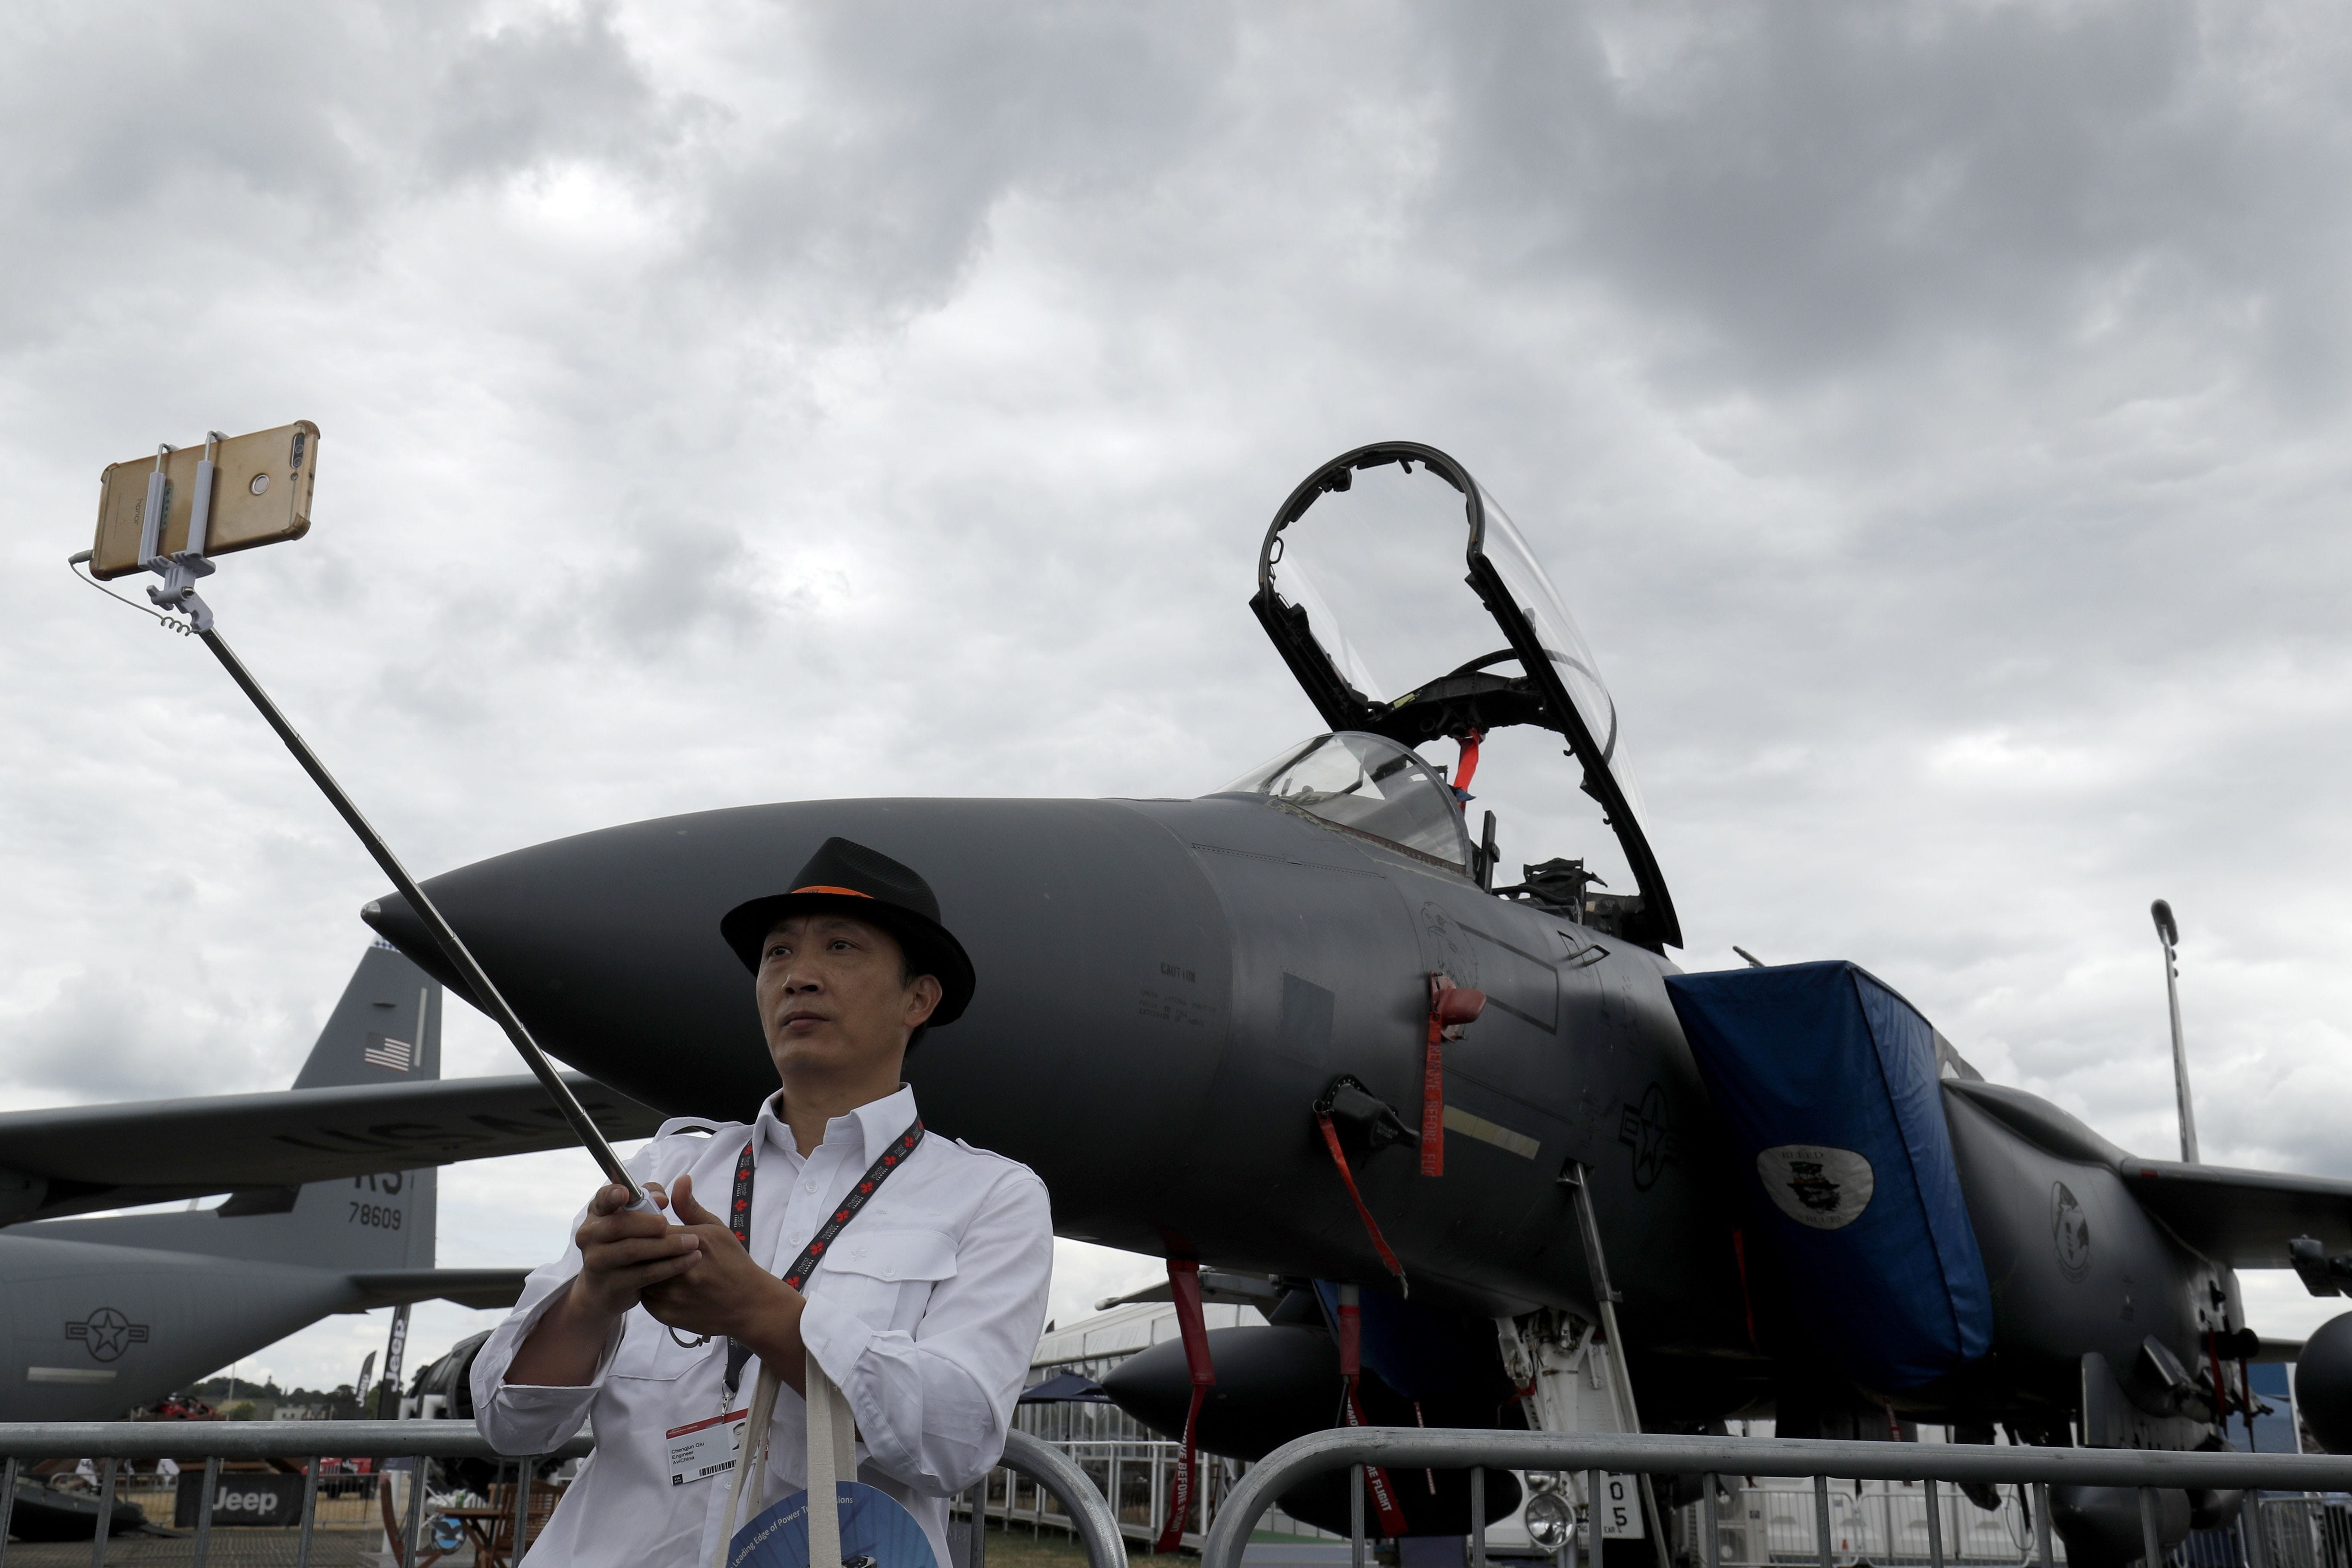 Scenes from the 2018 Farnborough Airshow   USA Today